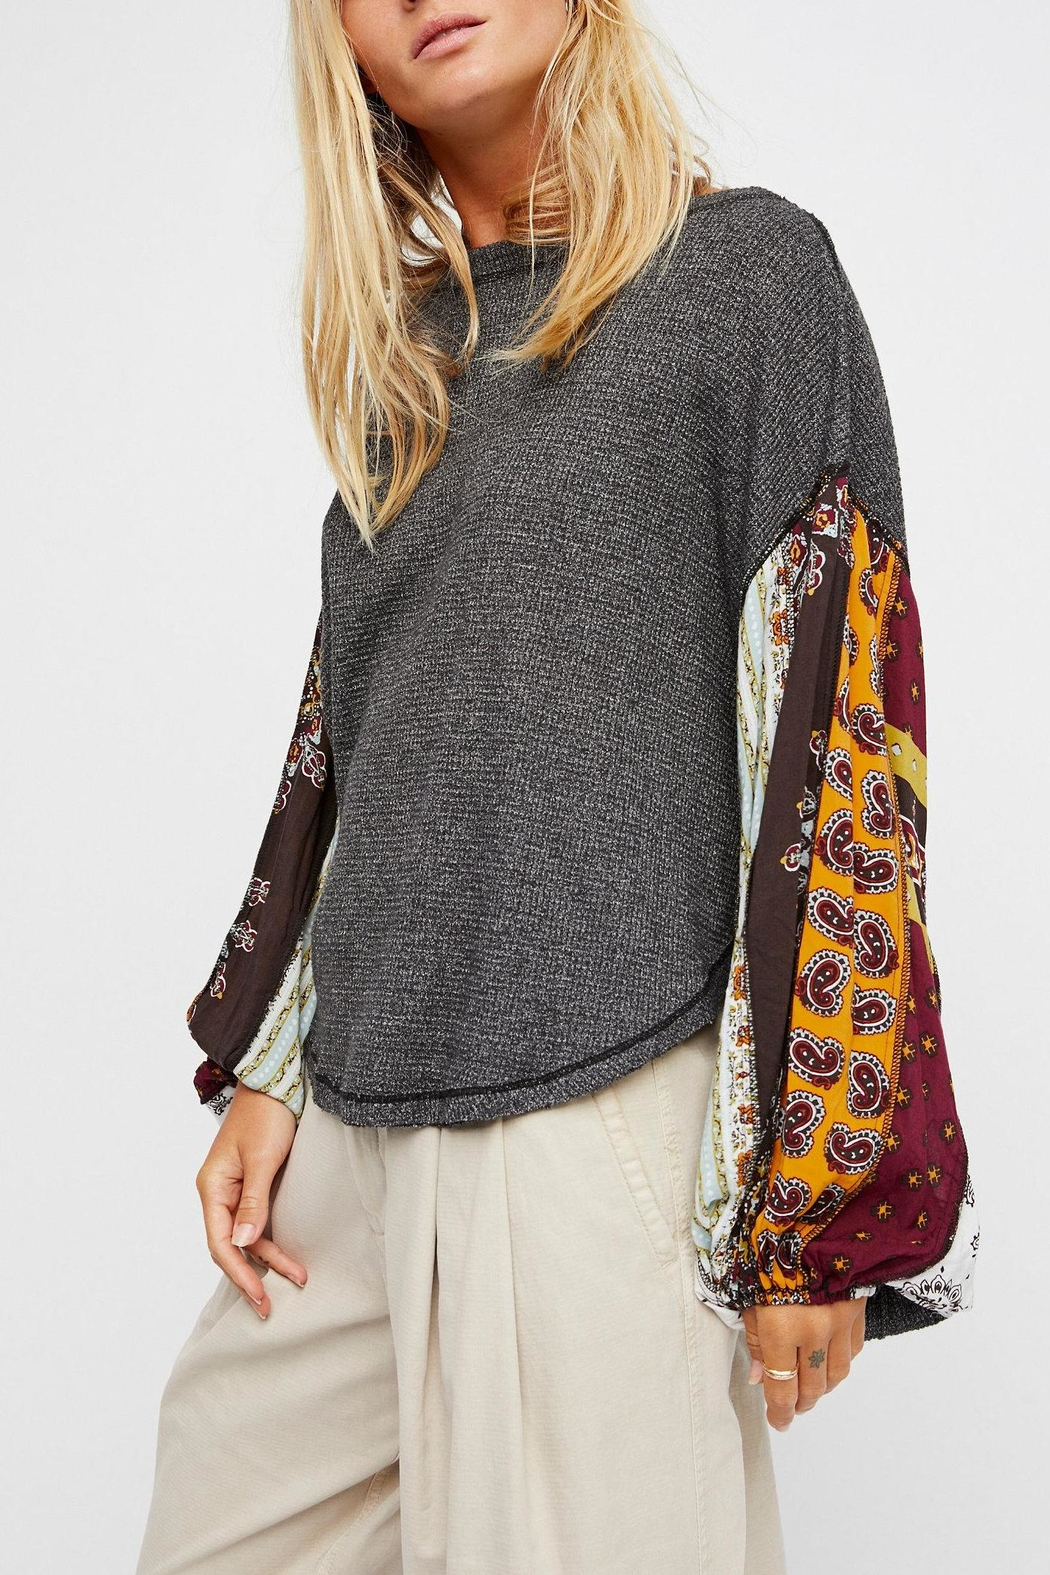 Free People Blossom Thermal Top - Main Image